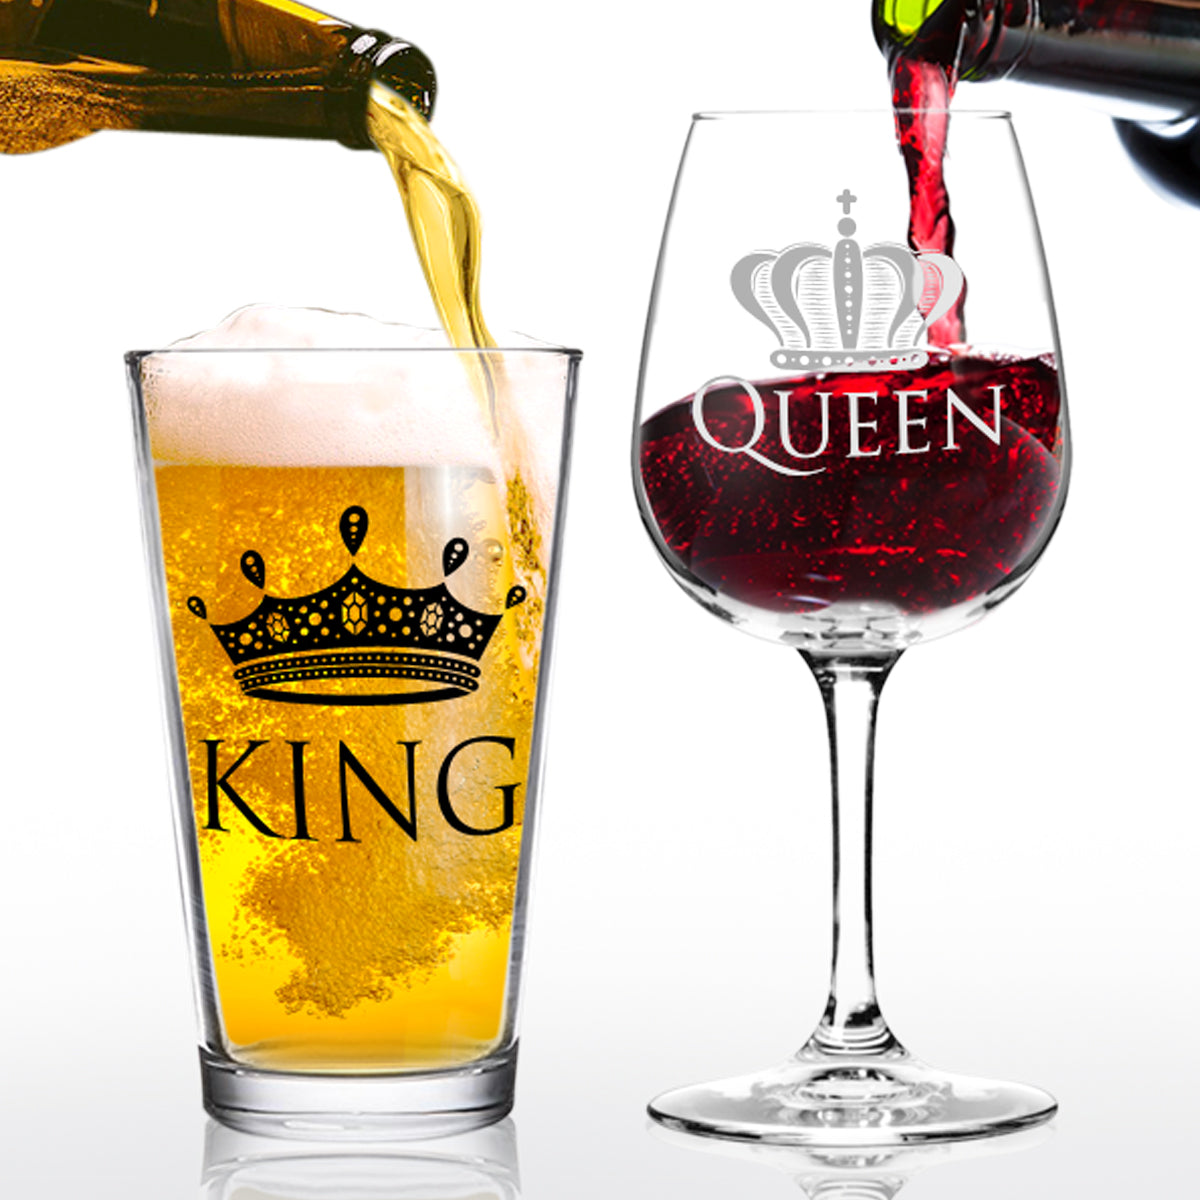 King Beer and Queen Wine Glass- 16 oz. Pint Glass - 12.75 oz. Wine Glass - Made in USA